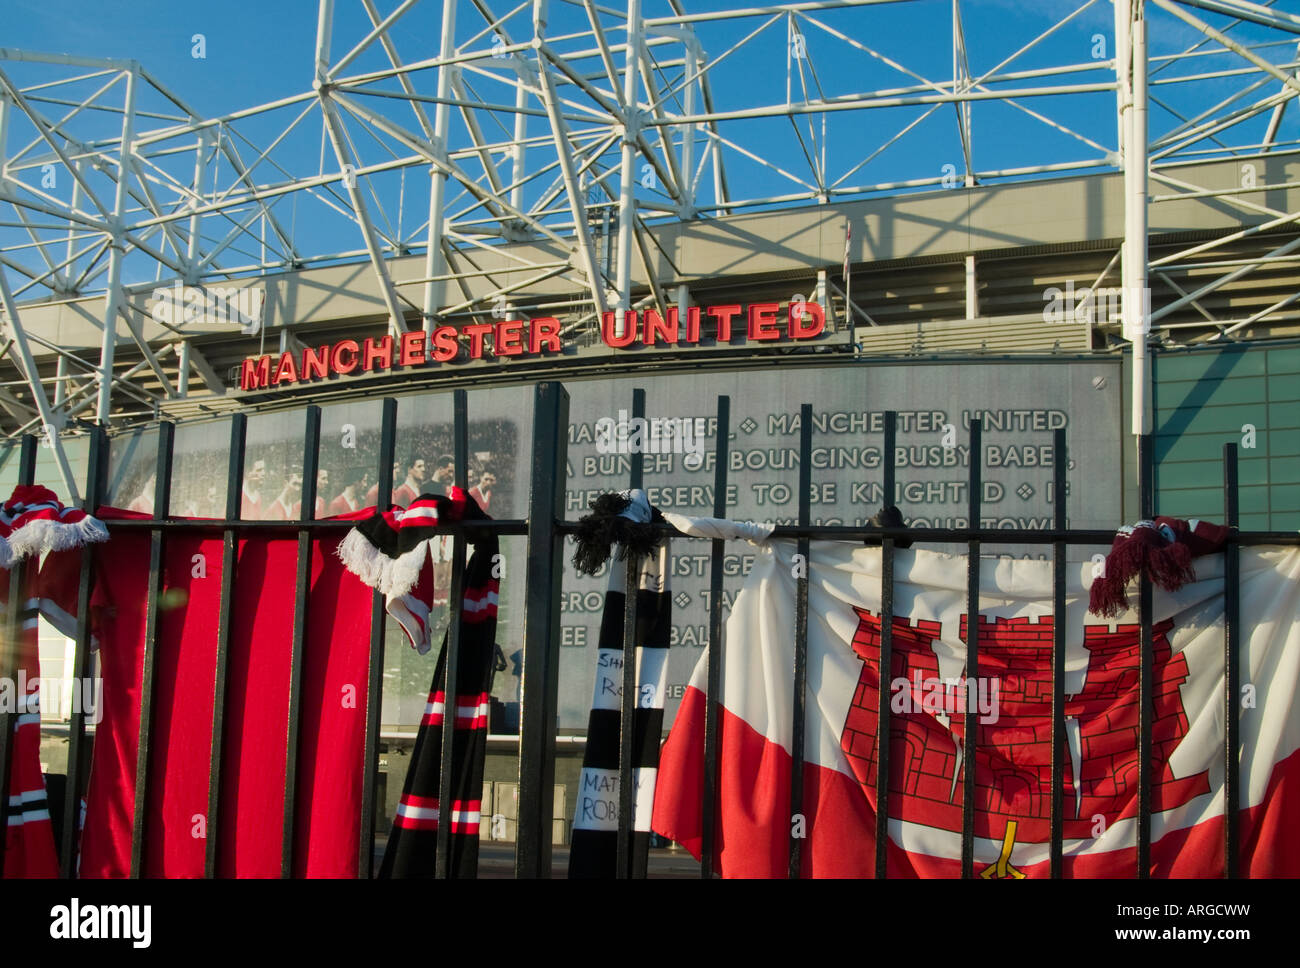 Manchester United's Old Trafford Ground Marking 50 Years Since The Munich Air Crash - Stock Image